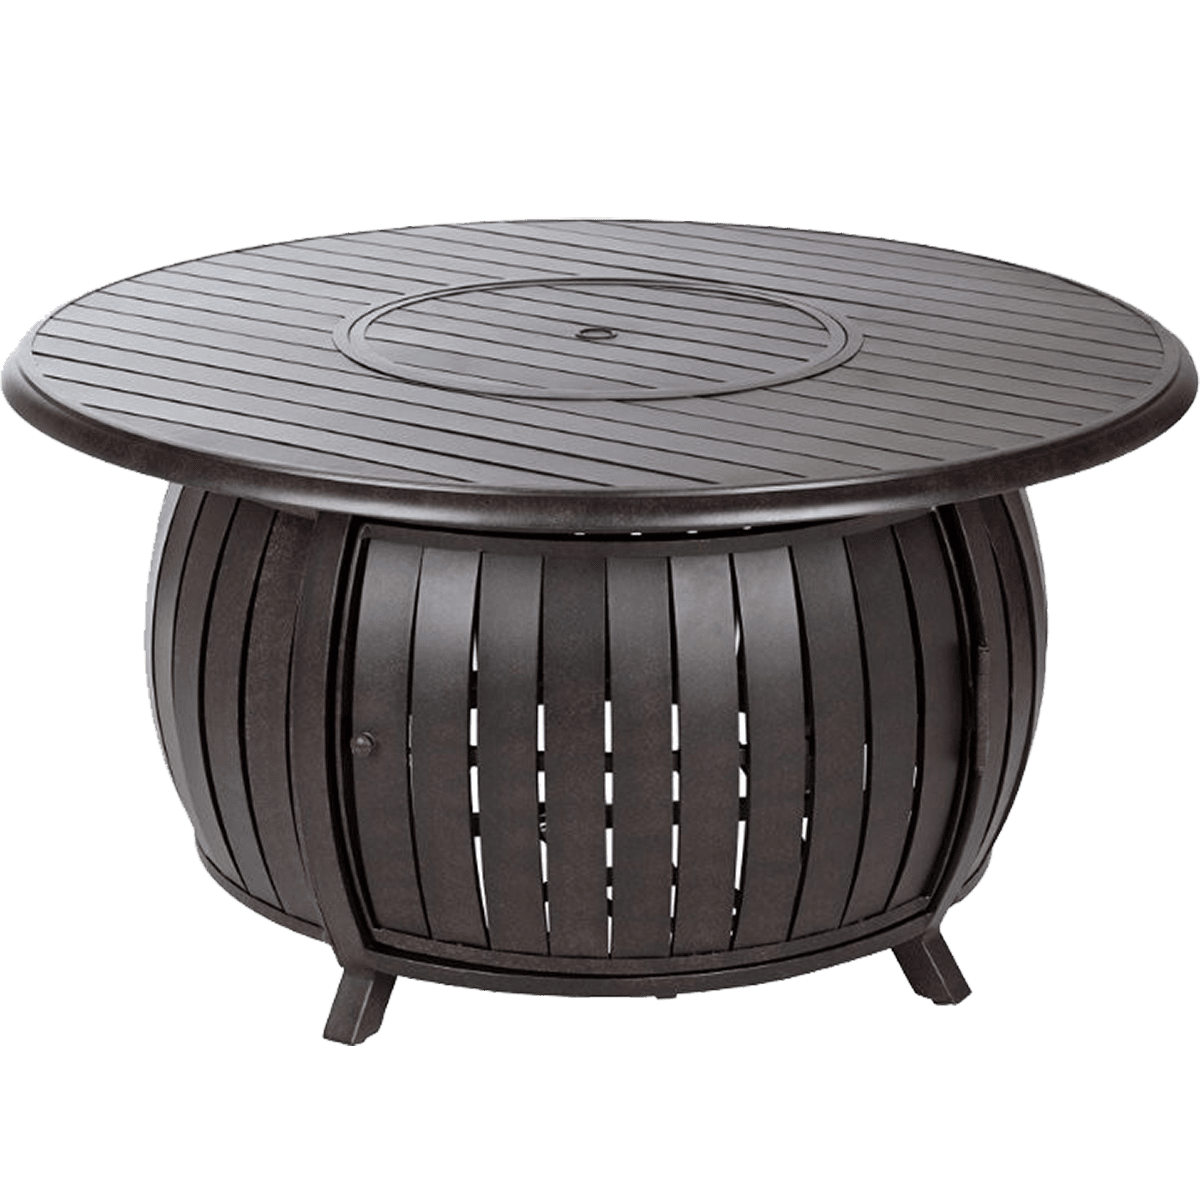 Fire Sense Extruded Aluminum Round LPG Fire Pit   Model 61832